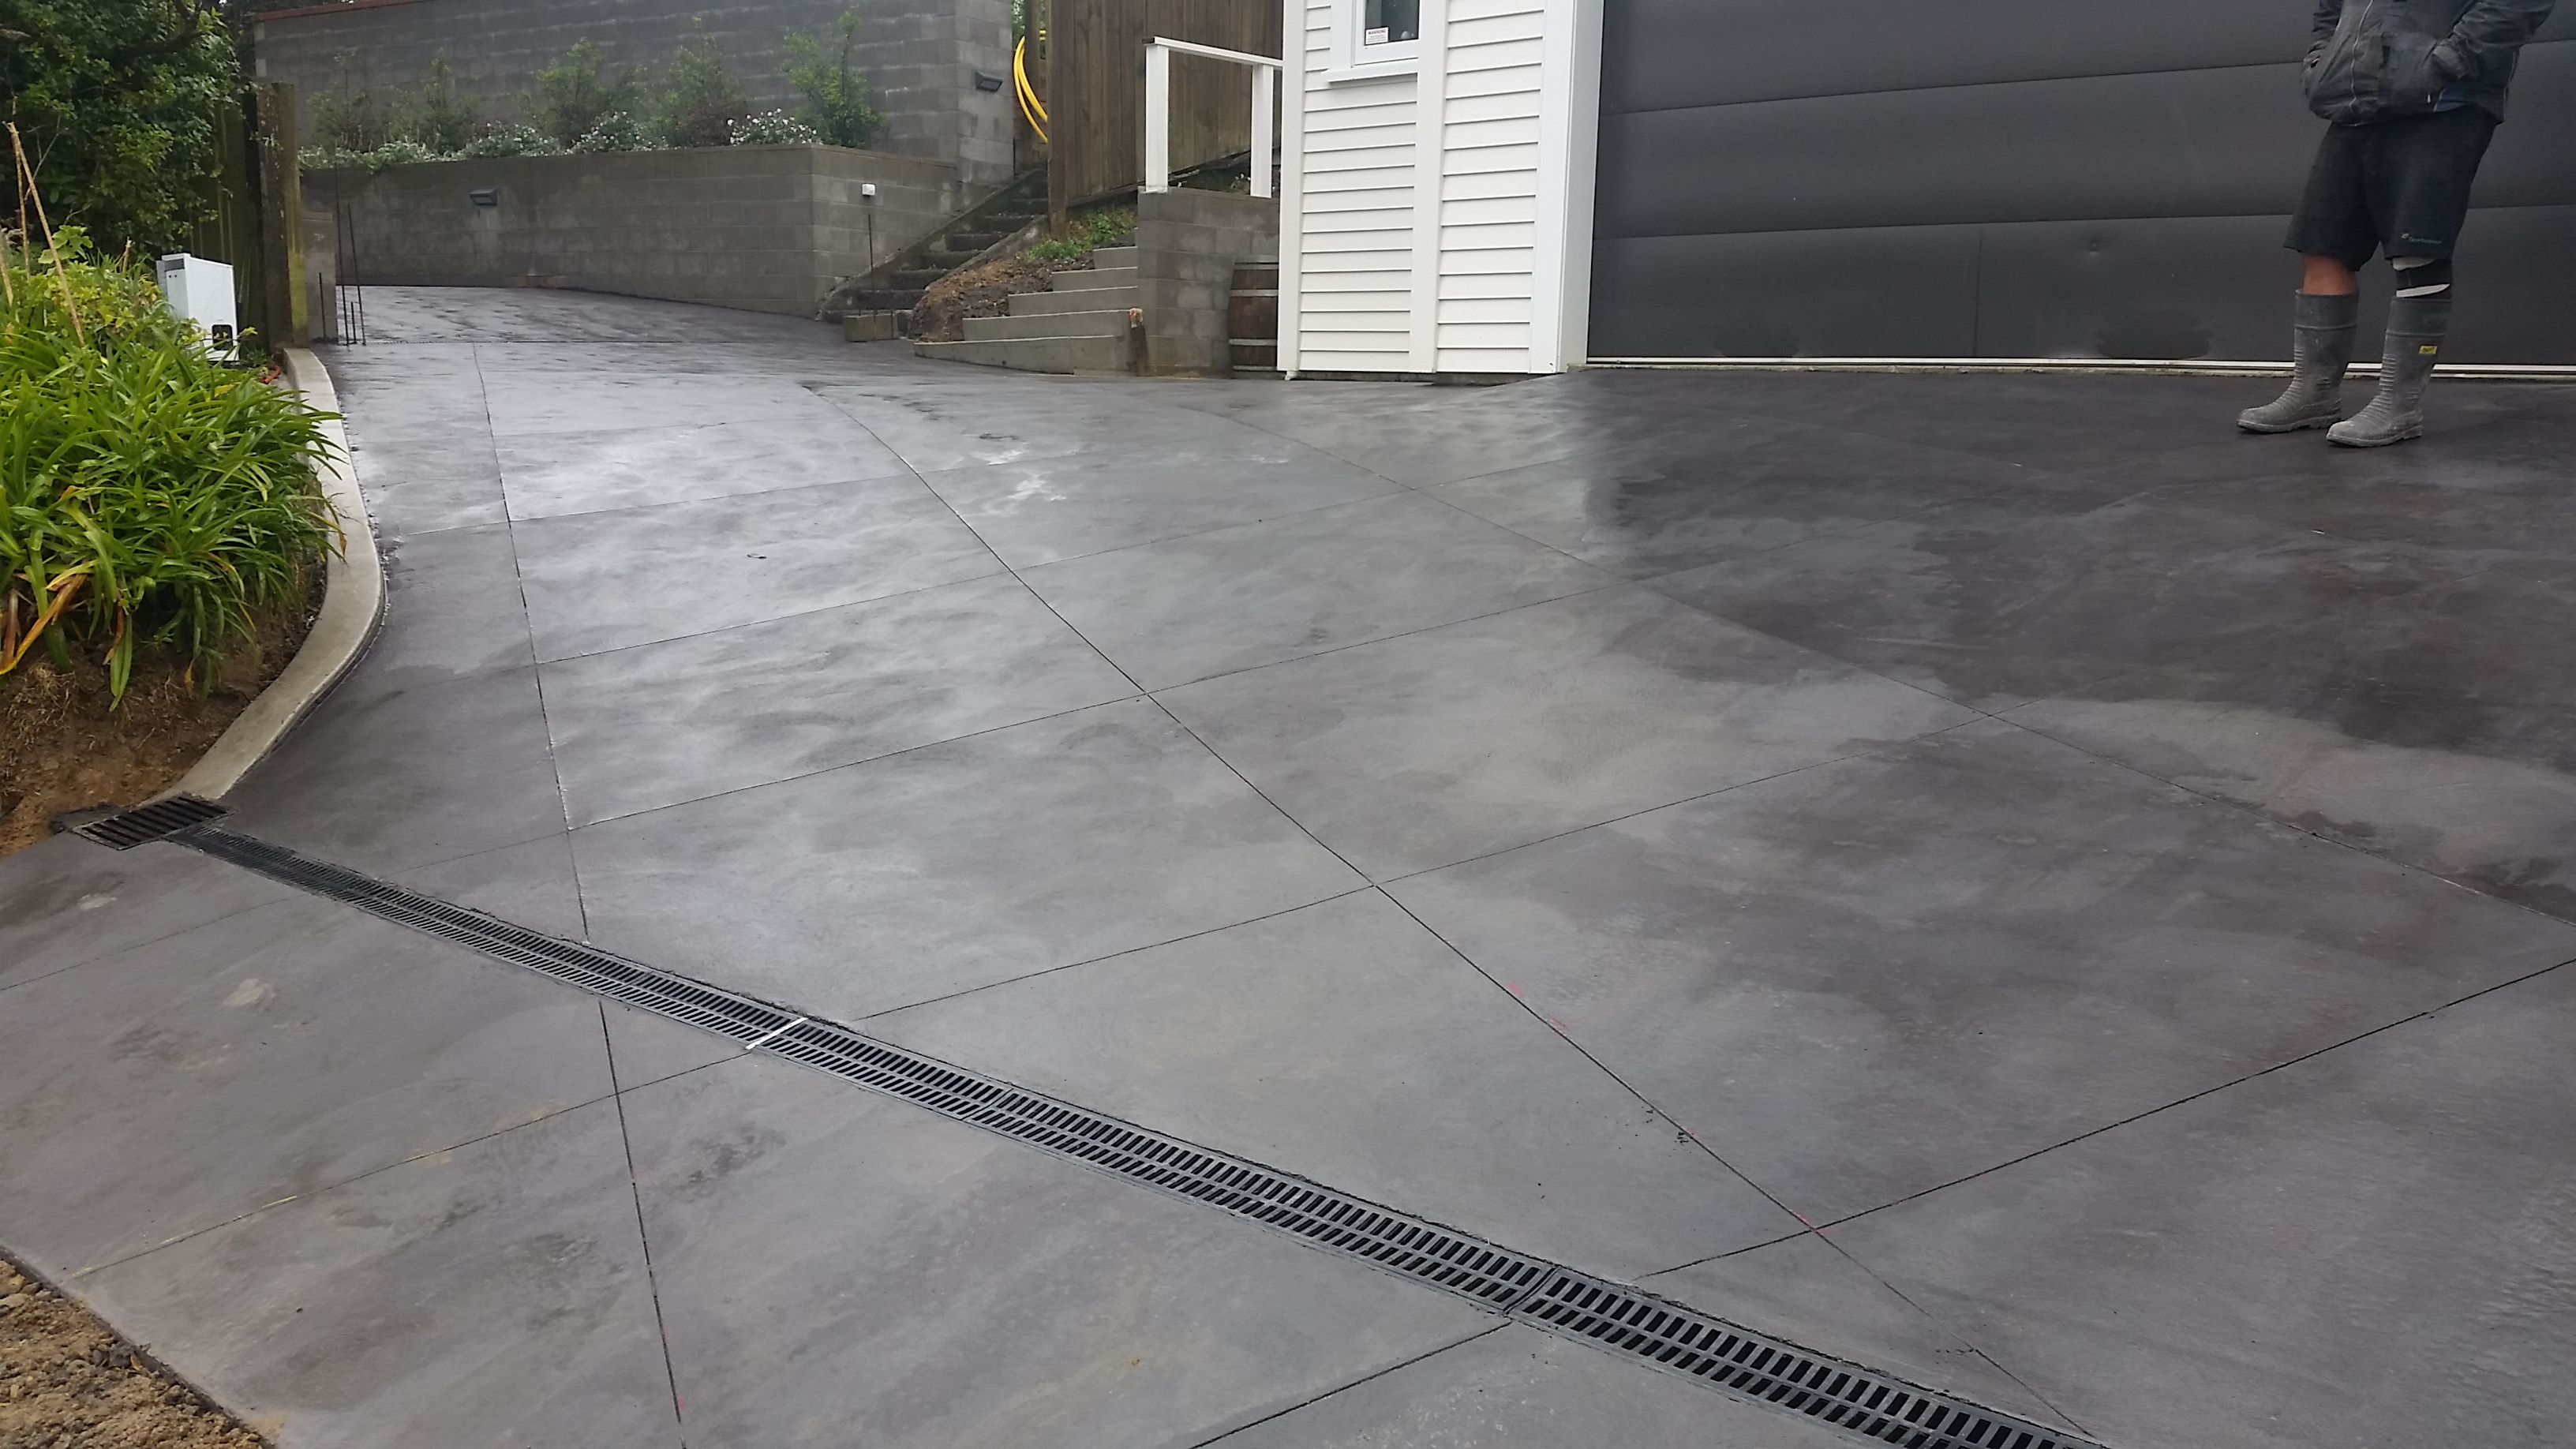 Texture trowel finish with 1 4m grid cuts - RGS Concrete